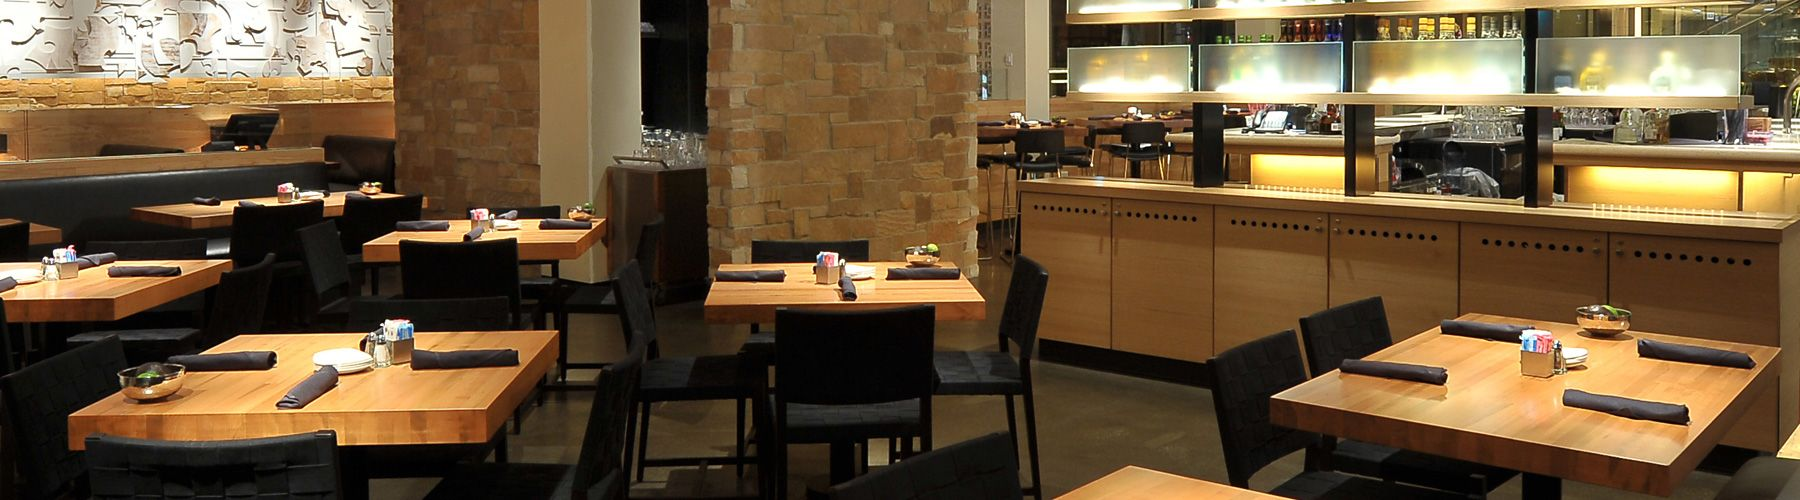 Cantina Laredo  Frisco Tx Has A Private Banquet Room With Classy Dallas Restaurants With Private Dining Rooms Inspiration Design